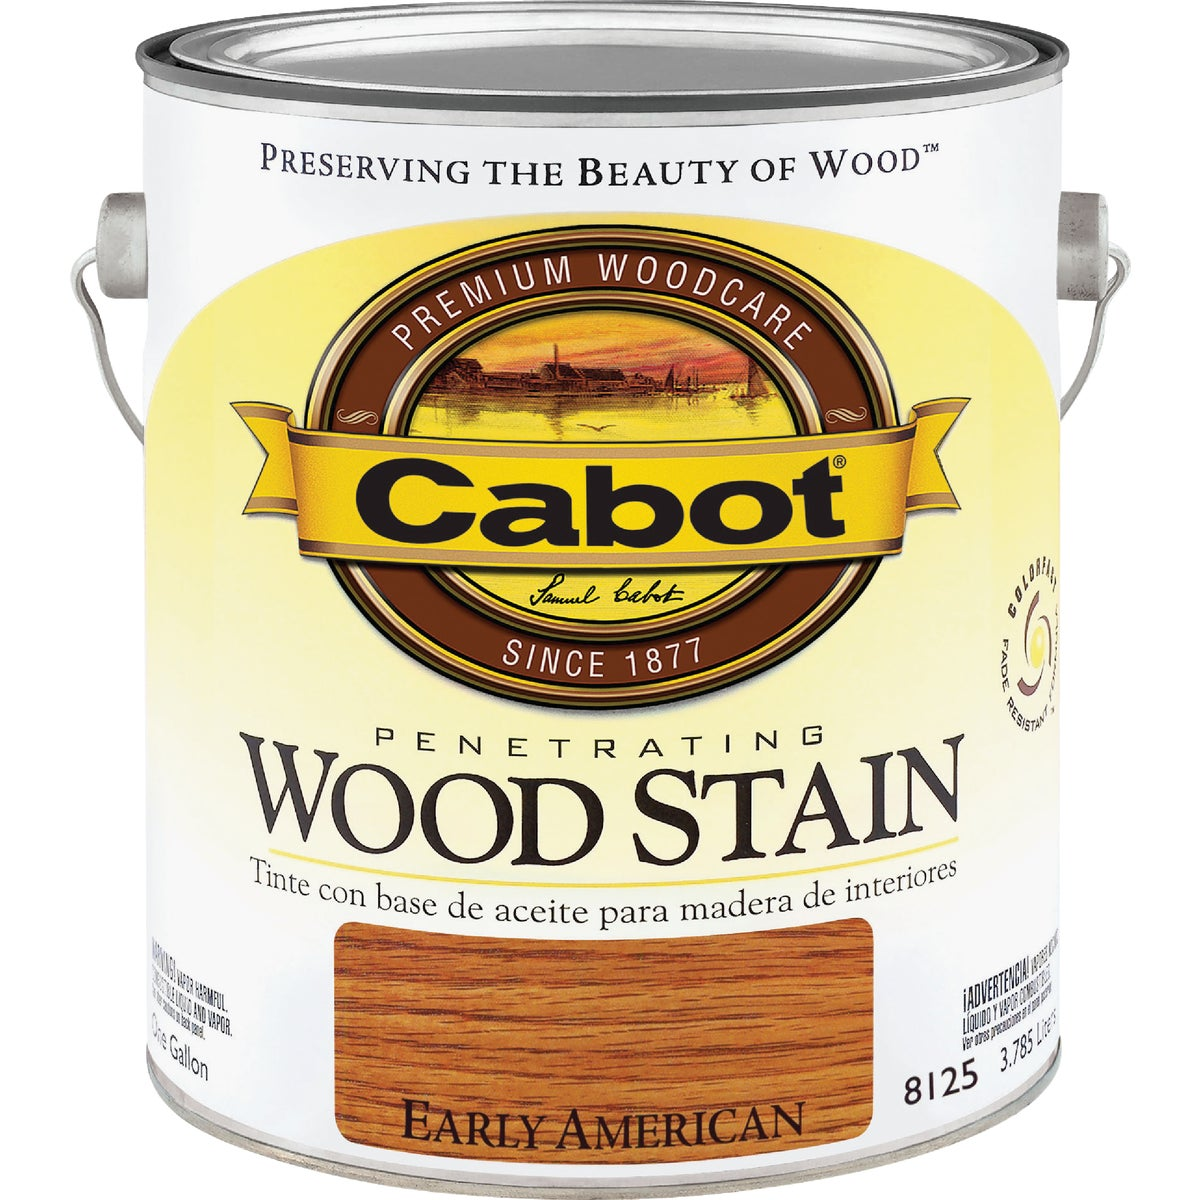 INT EARLY AMR WOOD STAIN - 144.0008125.007 by Valspar Corp